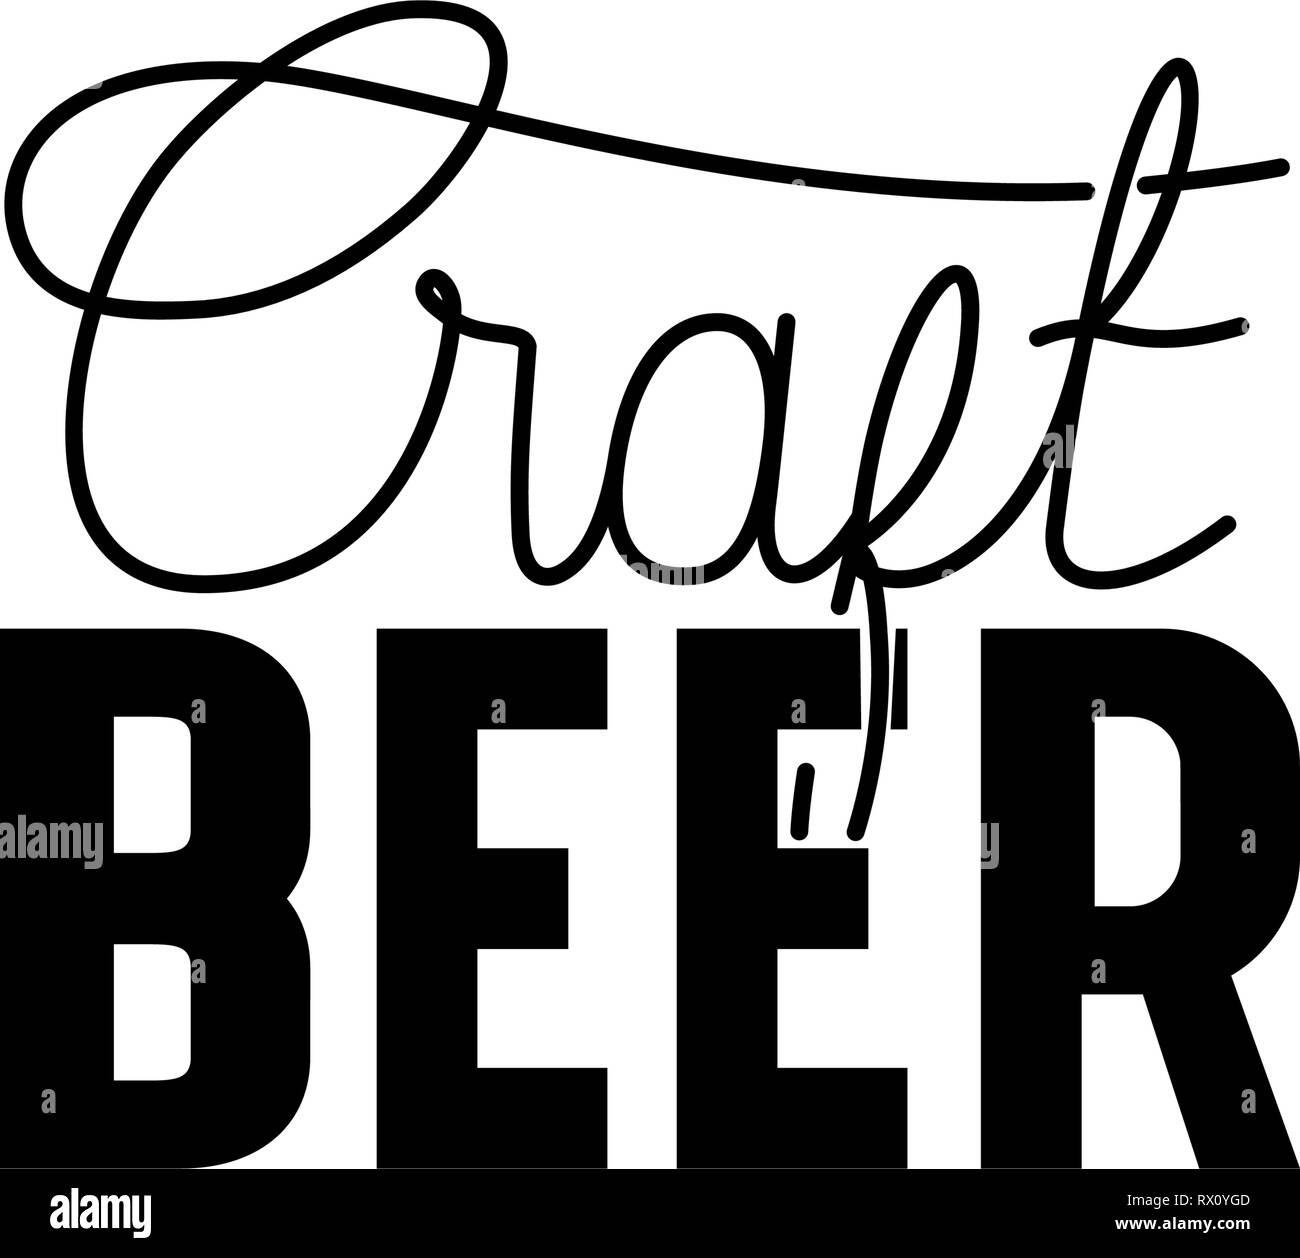 craft beer label isolated icon - Stock Image